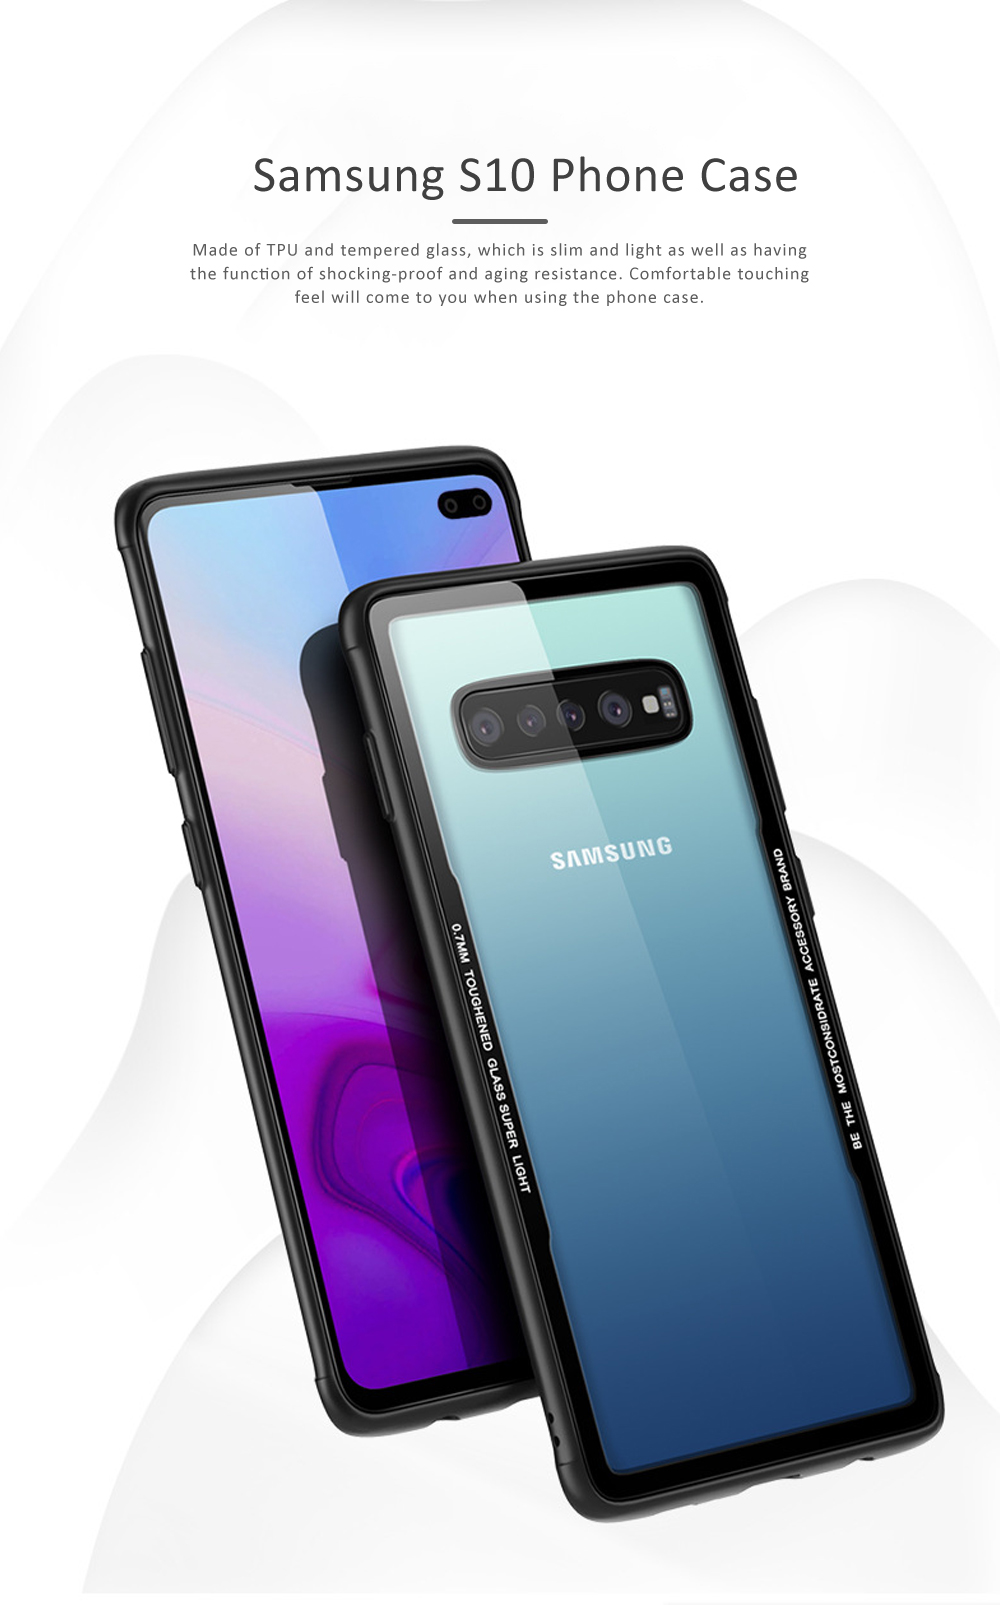 Samsung S10 Phone Case, New Transparent S10 Tempered Glass Case, Anti-fall & Anti-Scratch Samsung Contracted Phone Case for S10, S10 Plus, S10 Lite 0